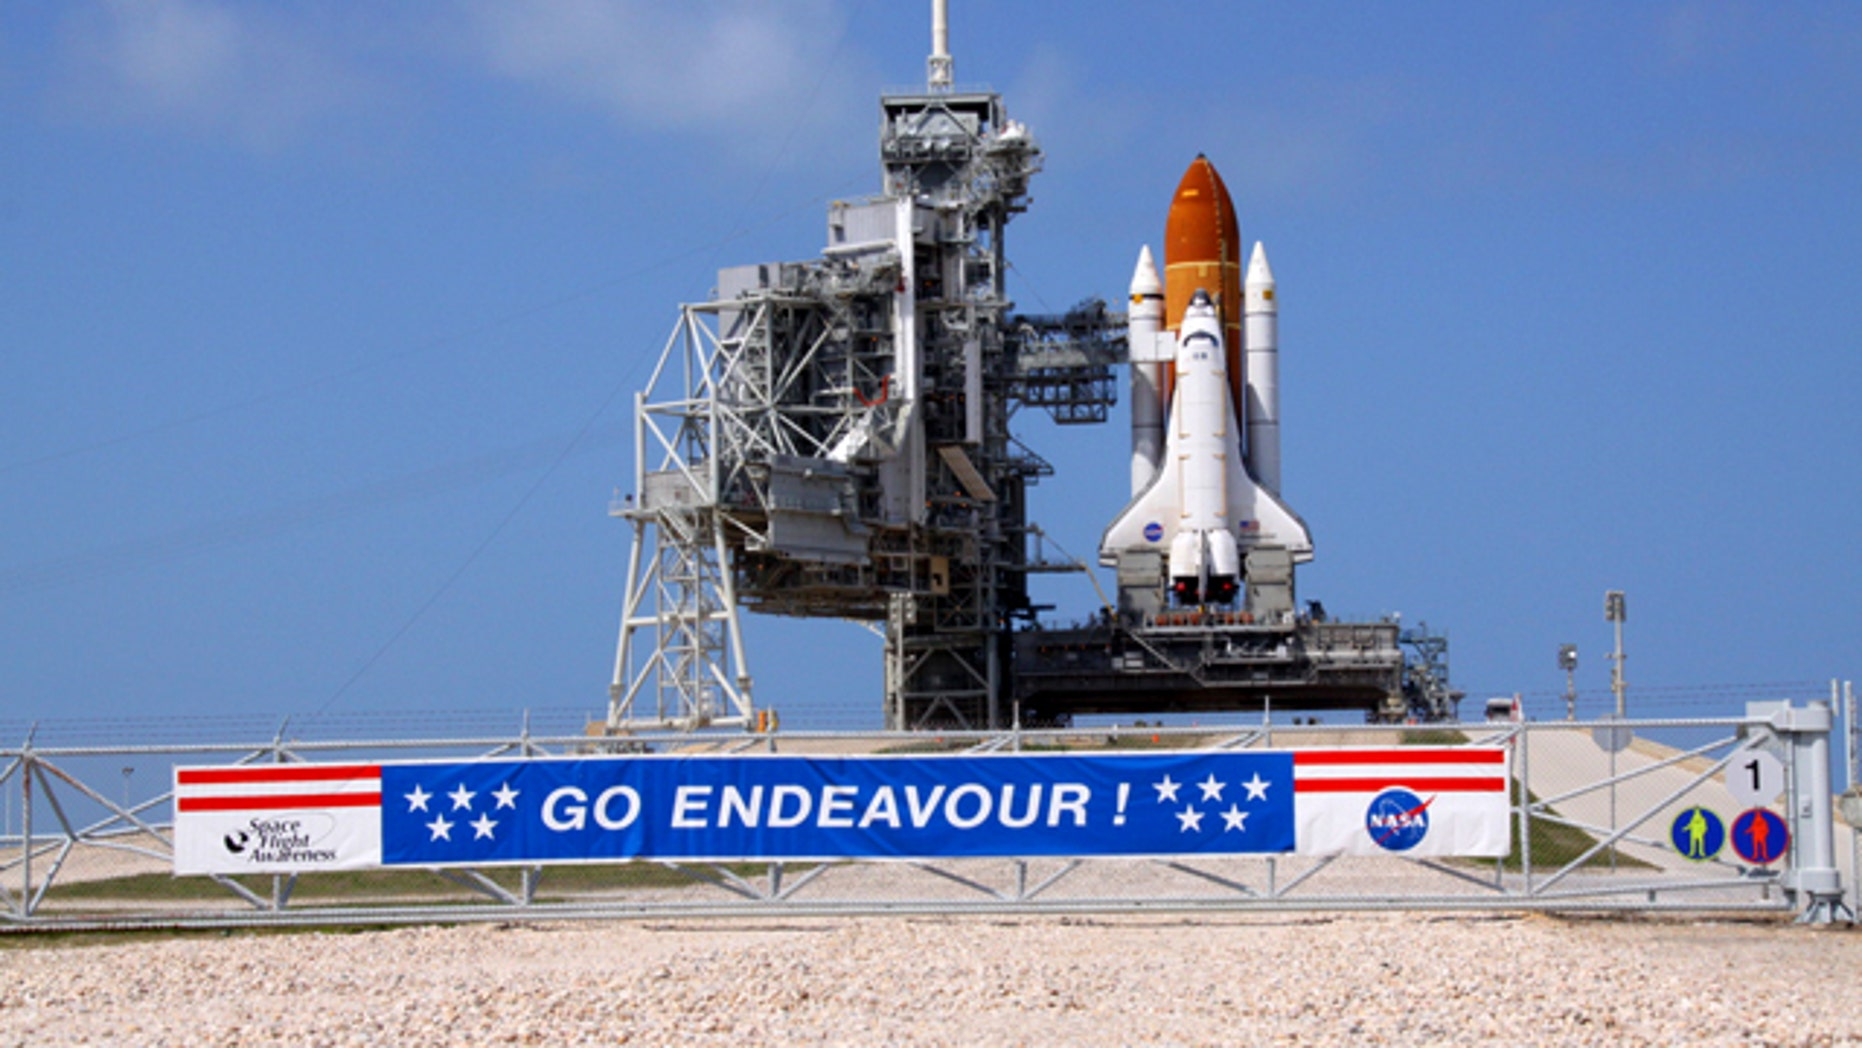 Space shuttle Endeavour glistens in the sun on Launch Pad 39A at NASA's Kennedy Space Center in Florida. The shuttle is launching on its final mission, STS-134, on April 29, 2011.